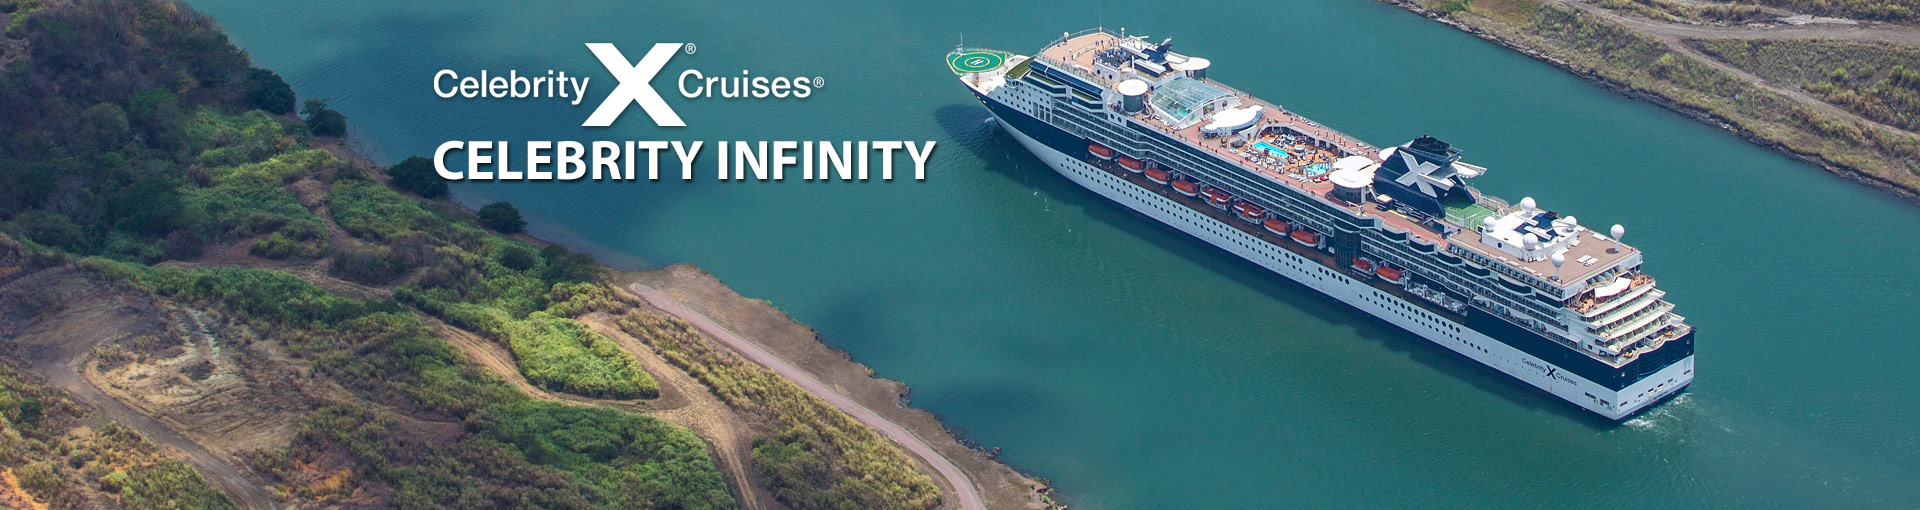 Cruise Registration, Pre-Cruise Registration